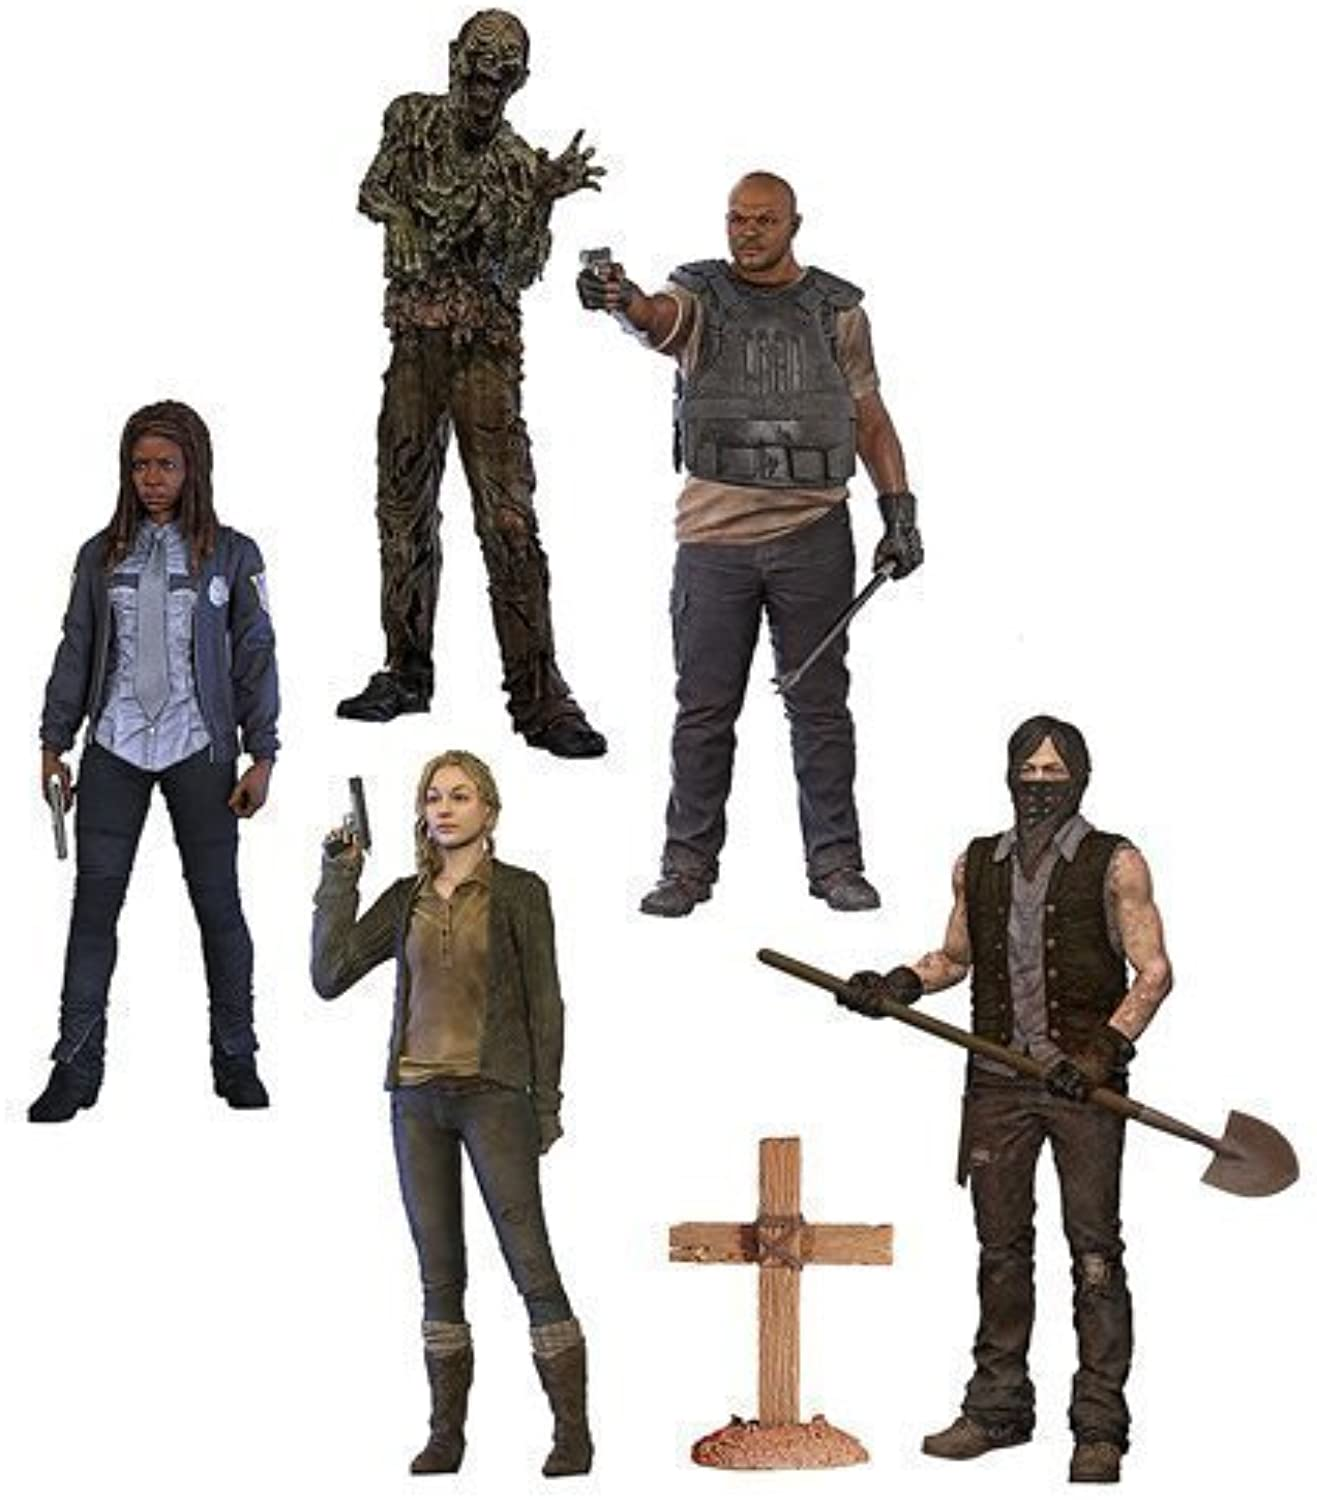 The Walking Dead TV Series 9 Beth Grüne, Grave Digger Daryl Dixon, T-Dog, Water Walker and Constable Michonne Action Figures Set of 5 by Walking Dead